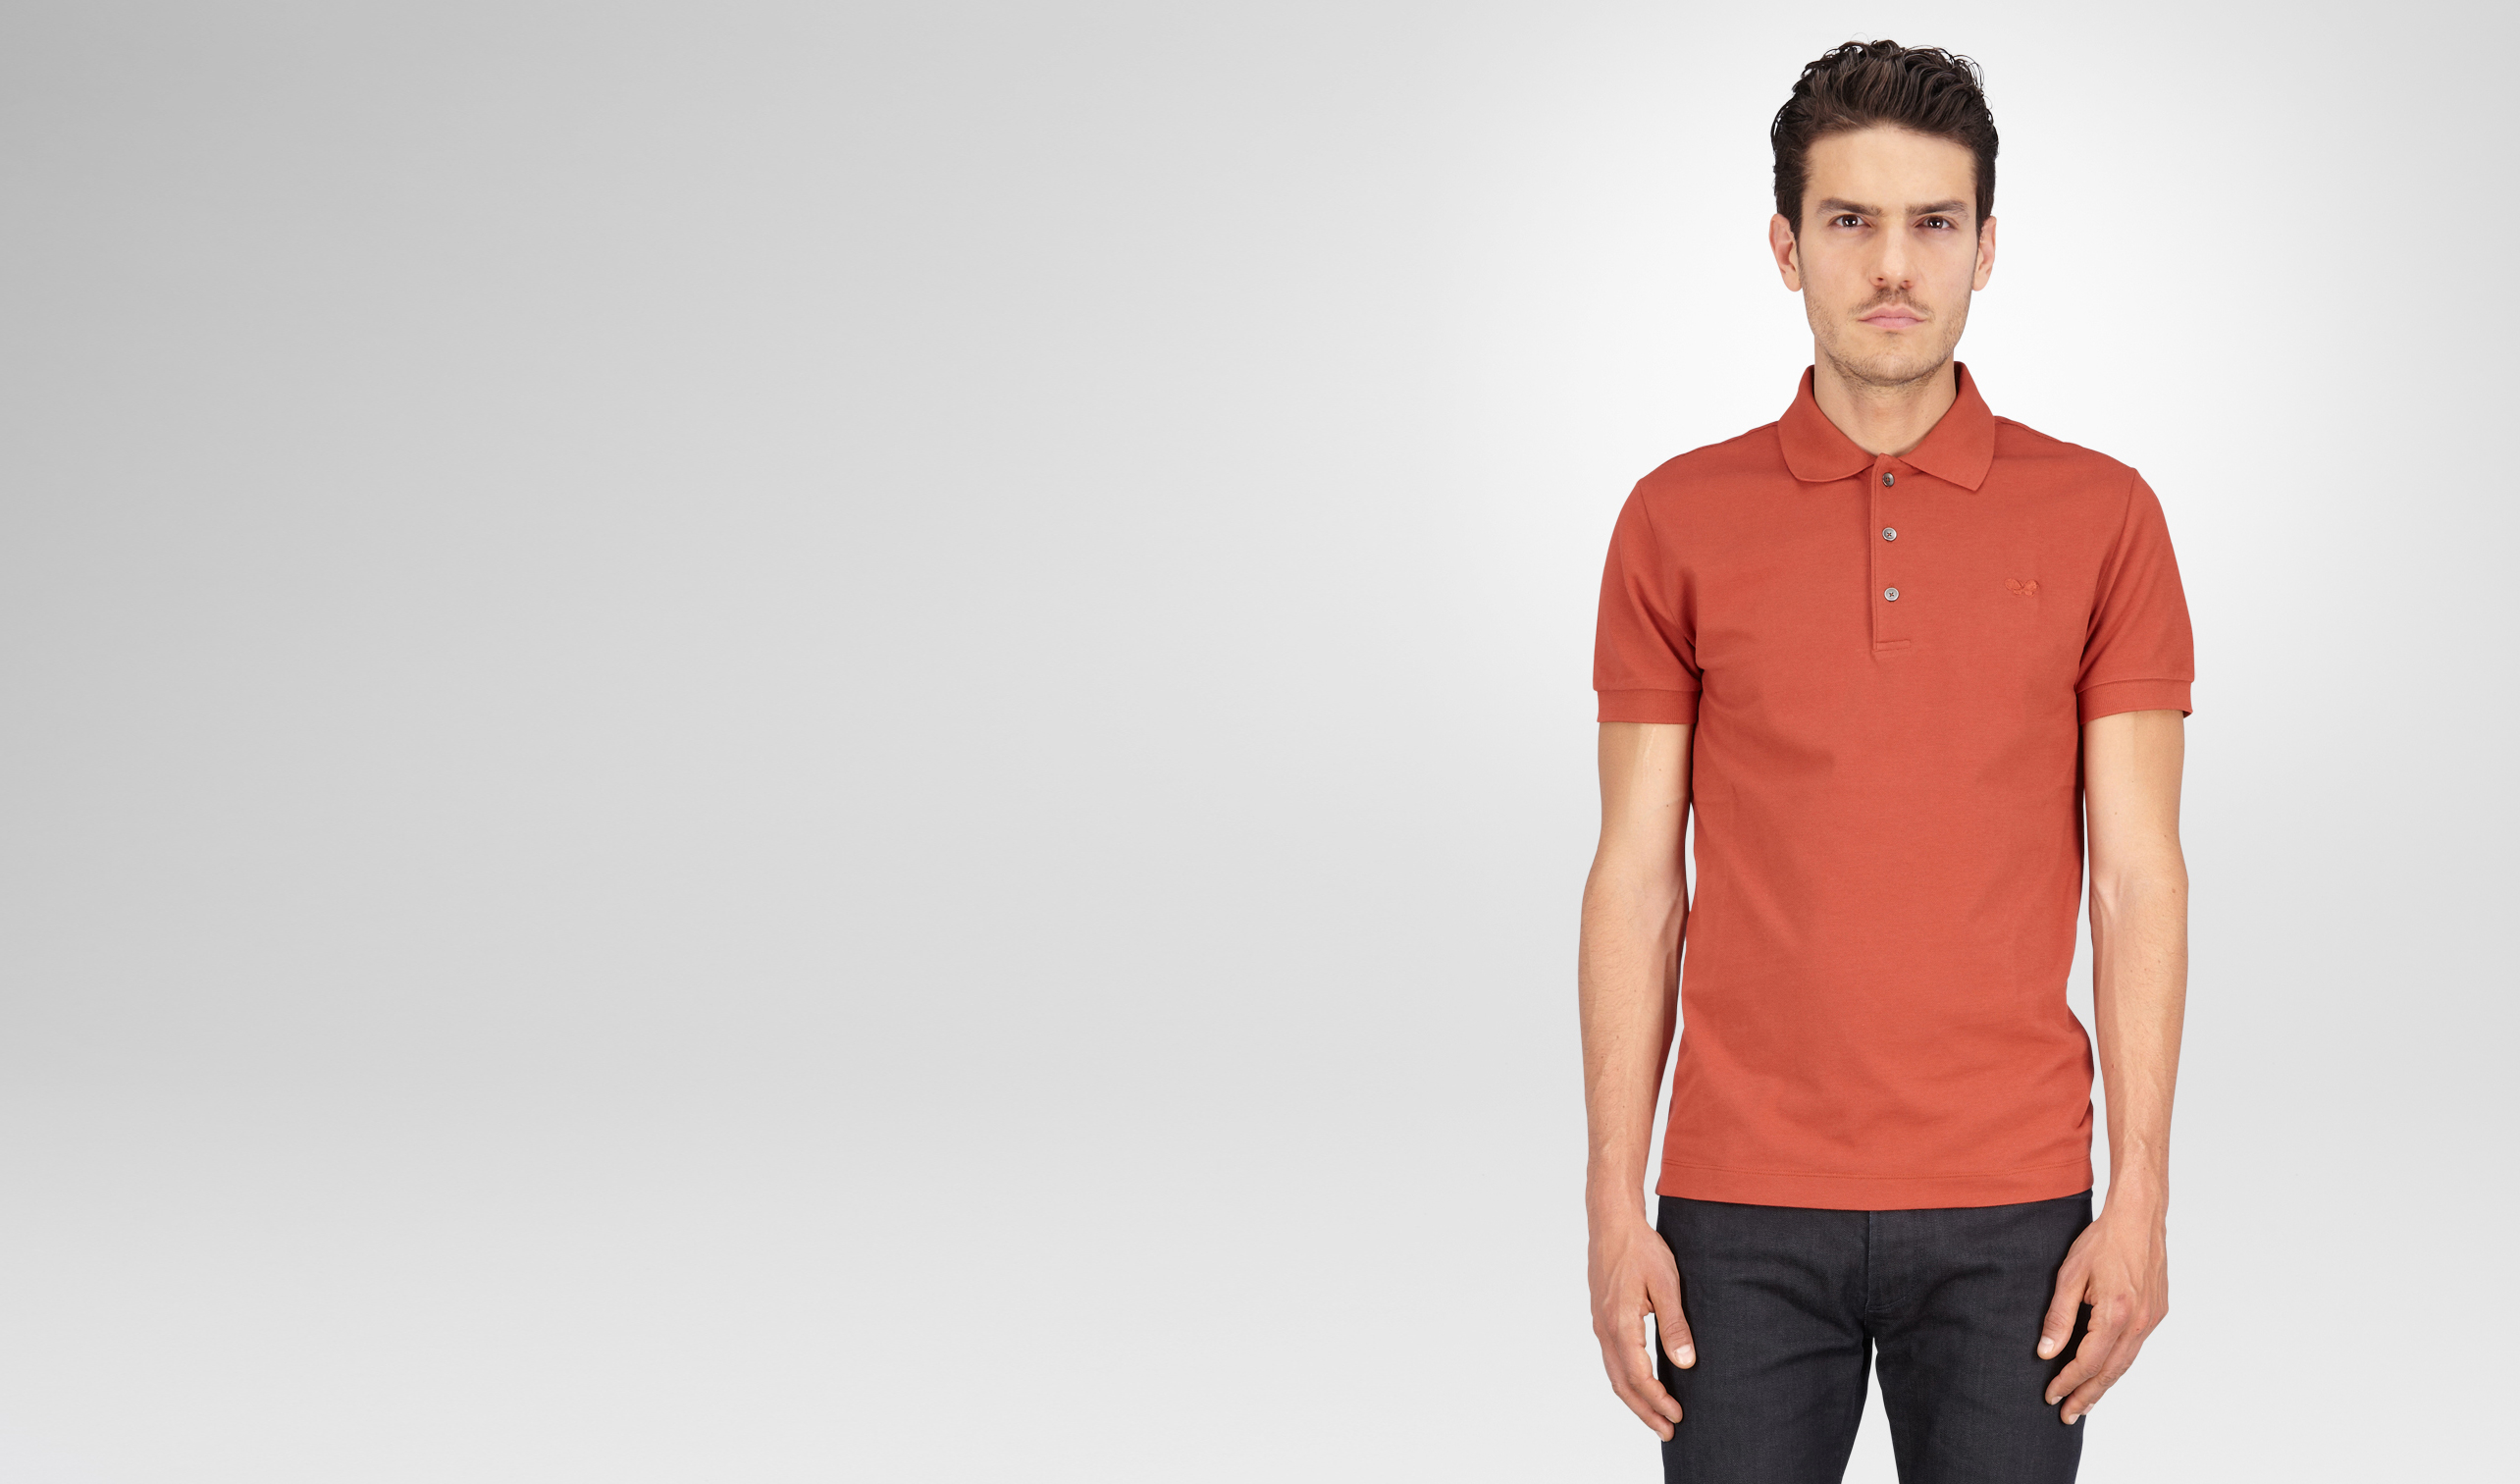 BOTTEGA VENETA Polo & T-Shirt U POLOSHIRT AUS ROBUSTEM PIKEE BURNT RED pl